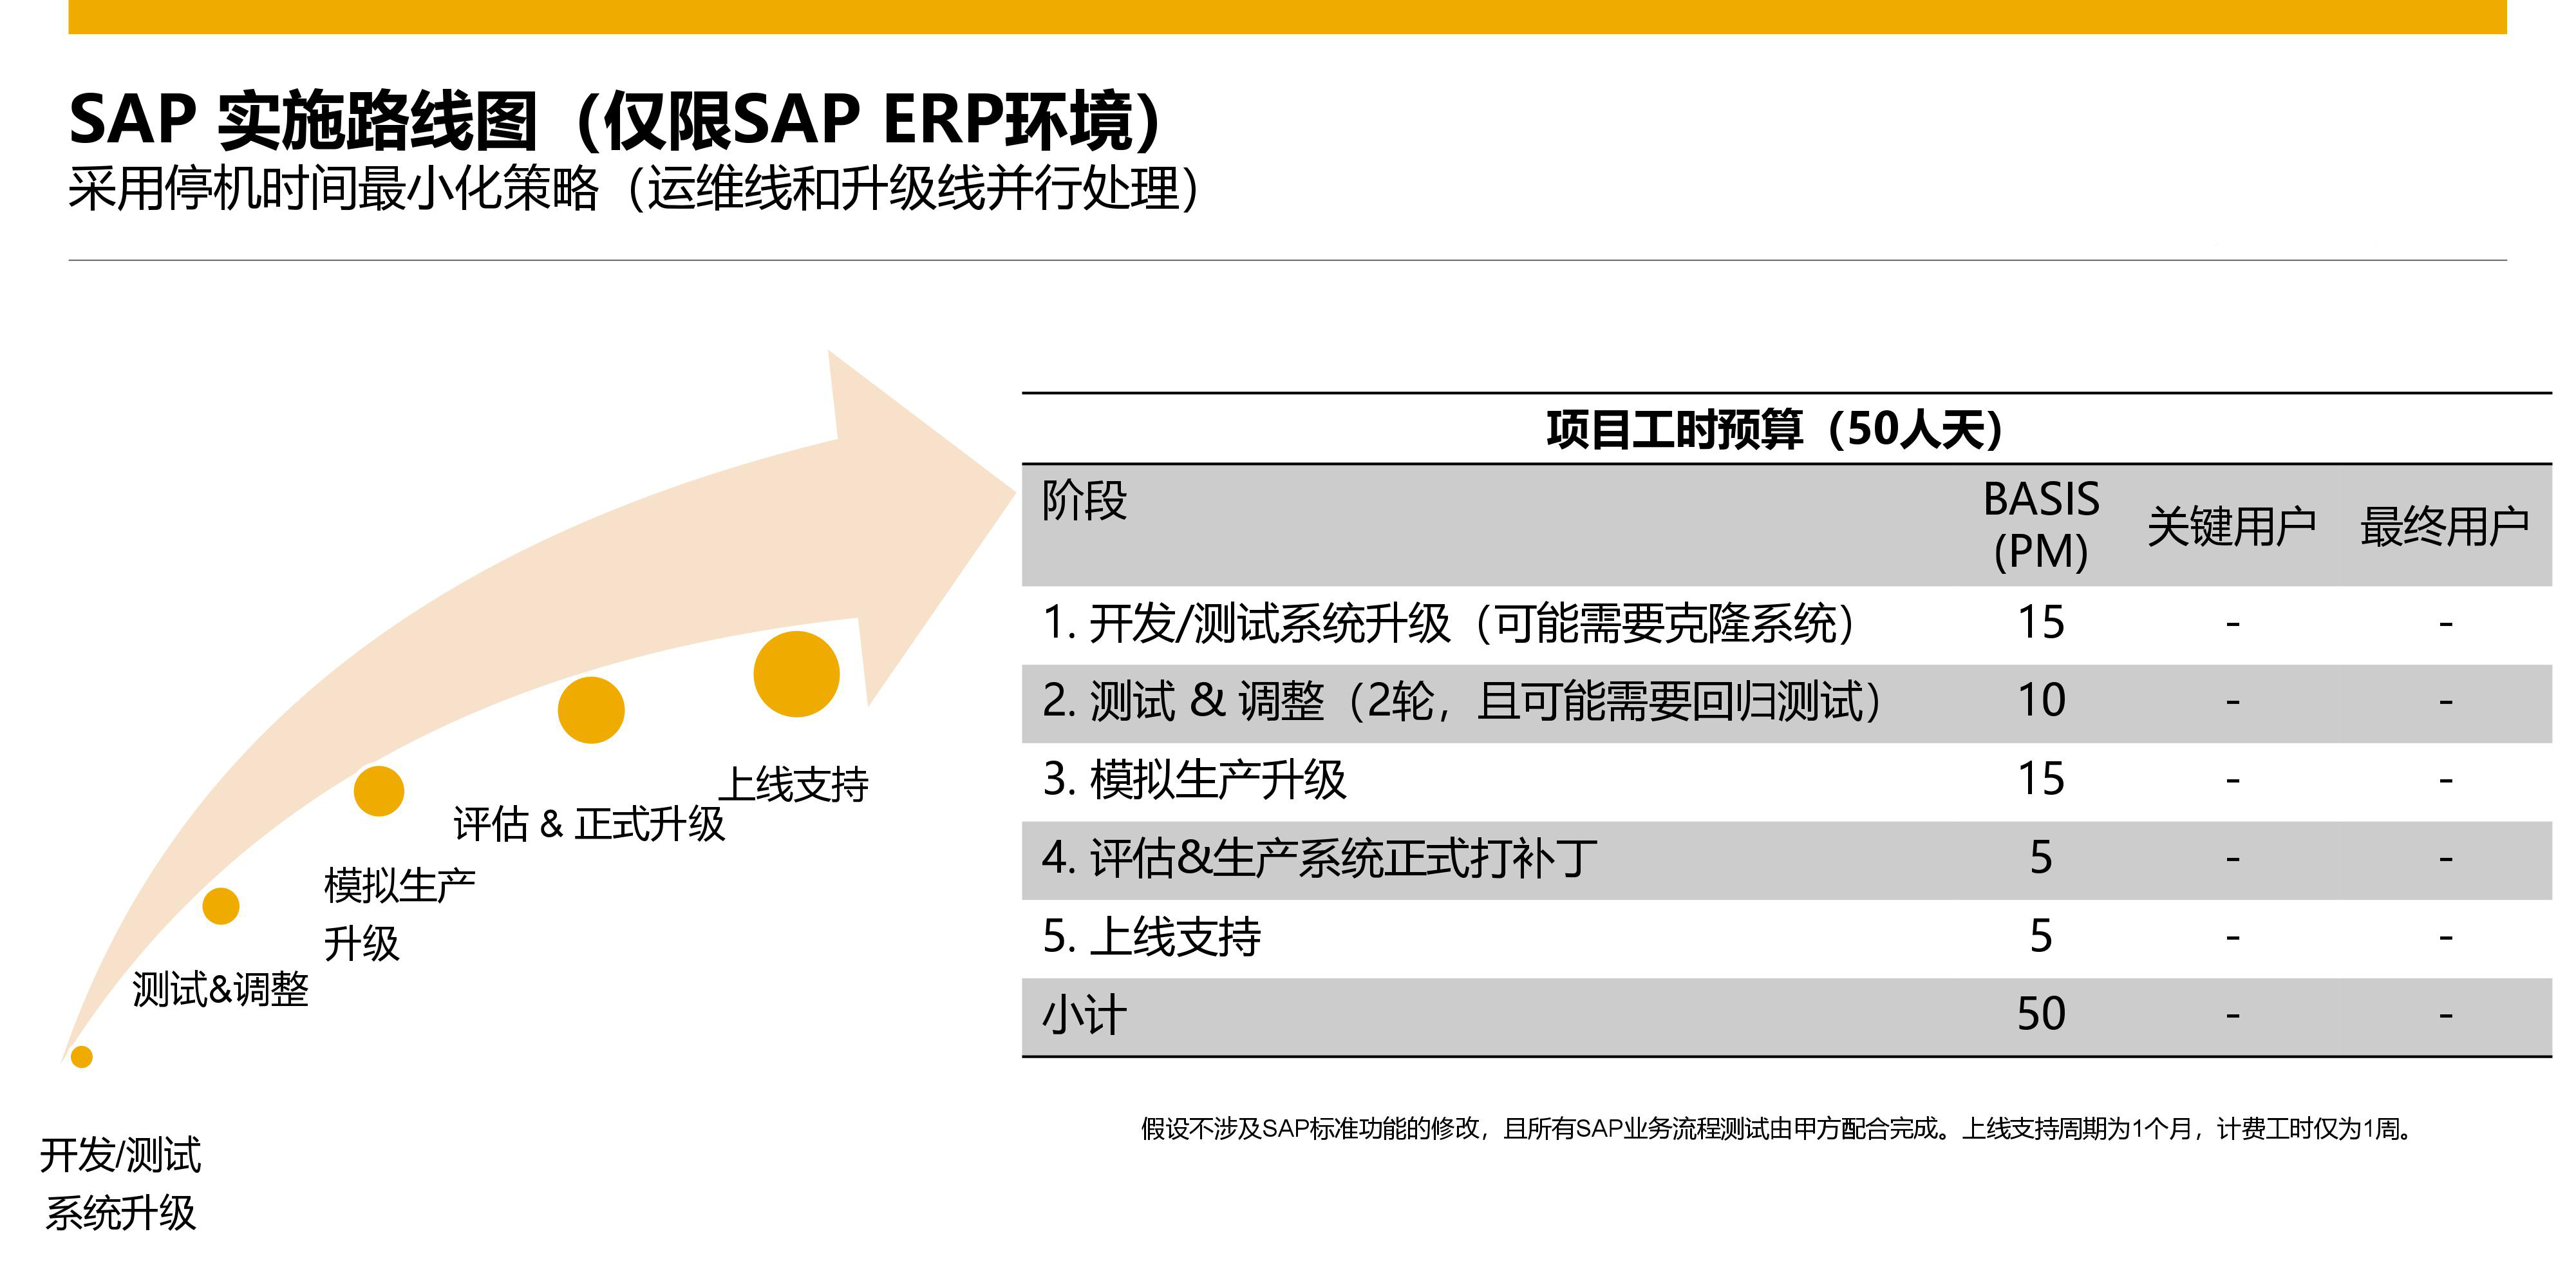 SAP税改,SAP HR服务包,SAP HR支持包,CLC Package,sap个人所得税调整,SAP个人所得税, HR Support Packages